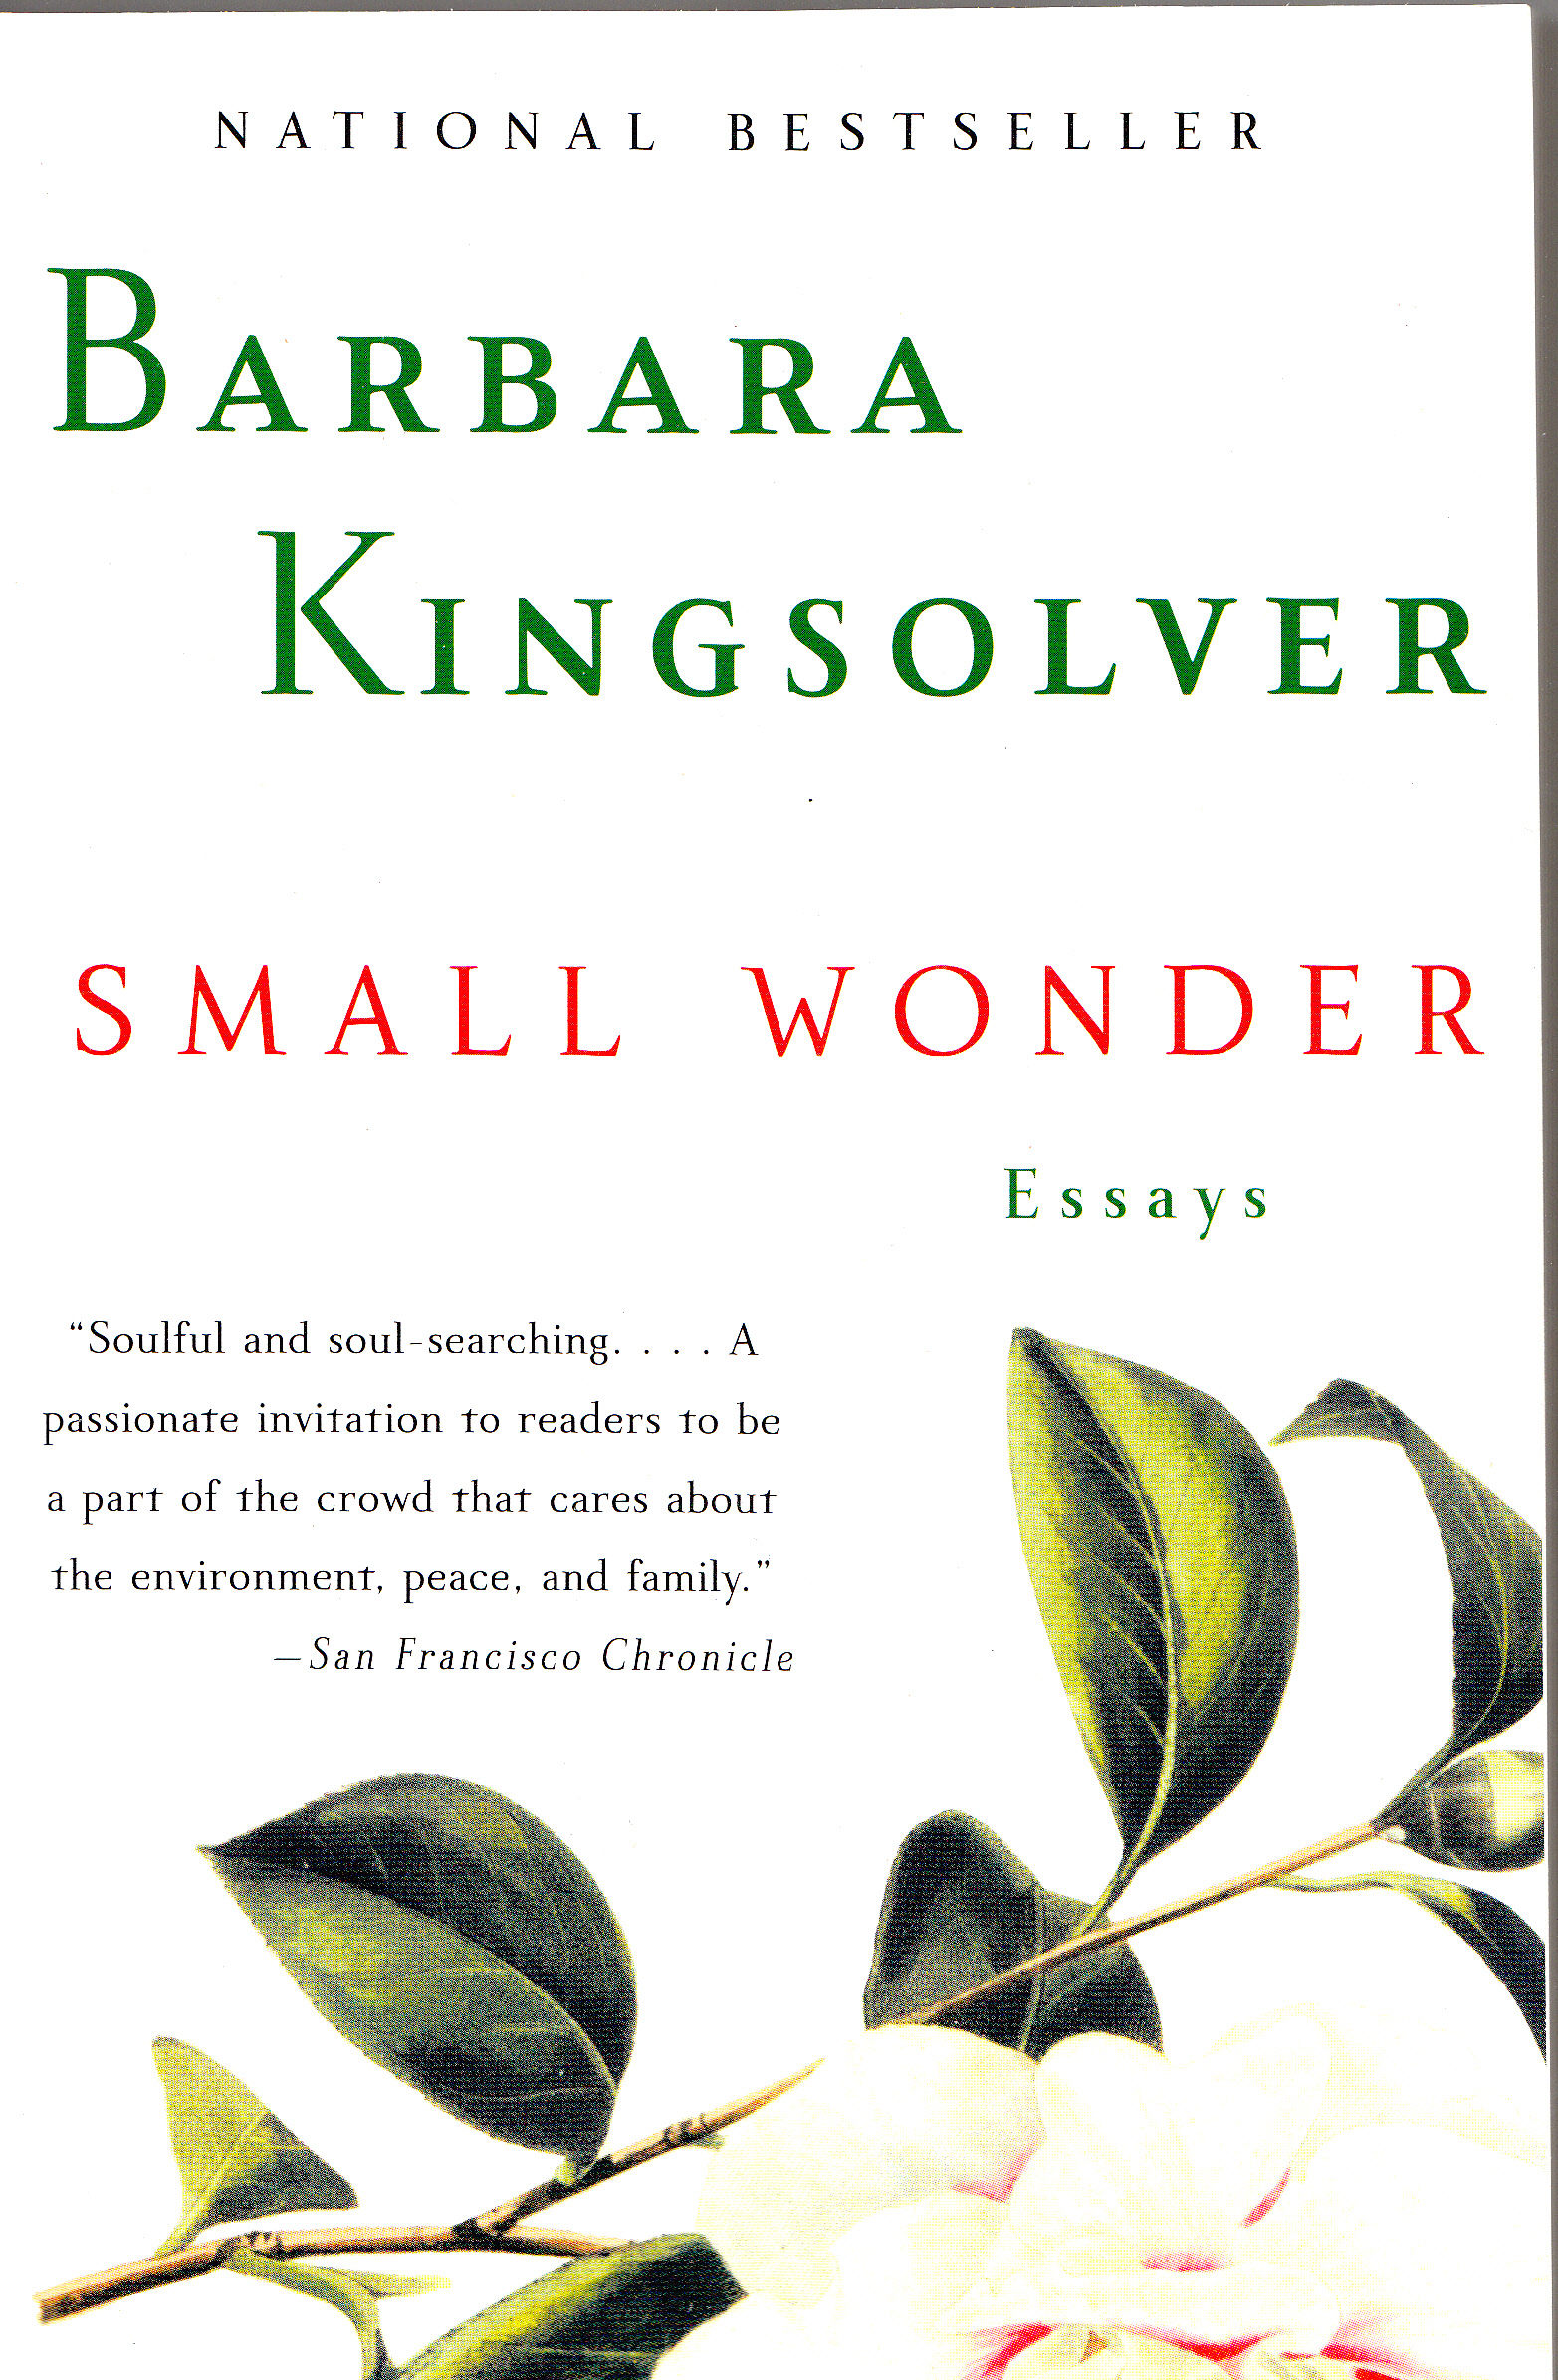 """barbara kingsolver critical essay Barbara kingsolver's books have sold millions of copies """"the poisonwood bible """"was nominated for the pulitzer prize, and her work is studied in courses ranging."""